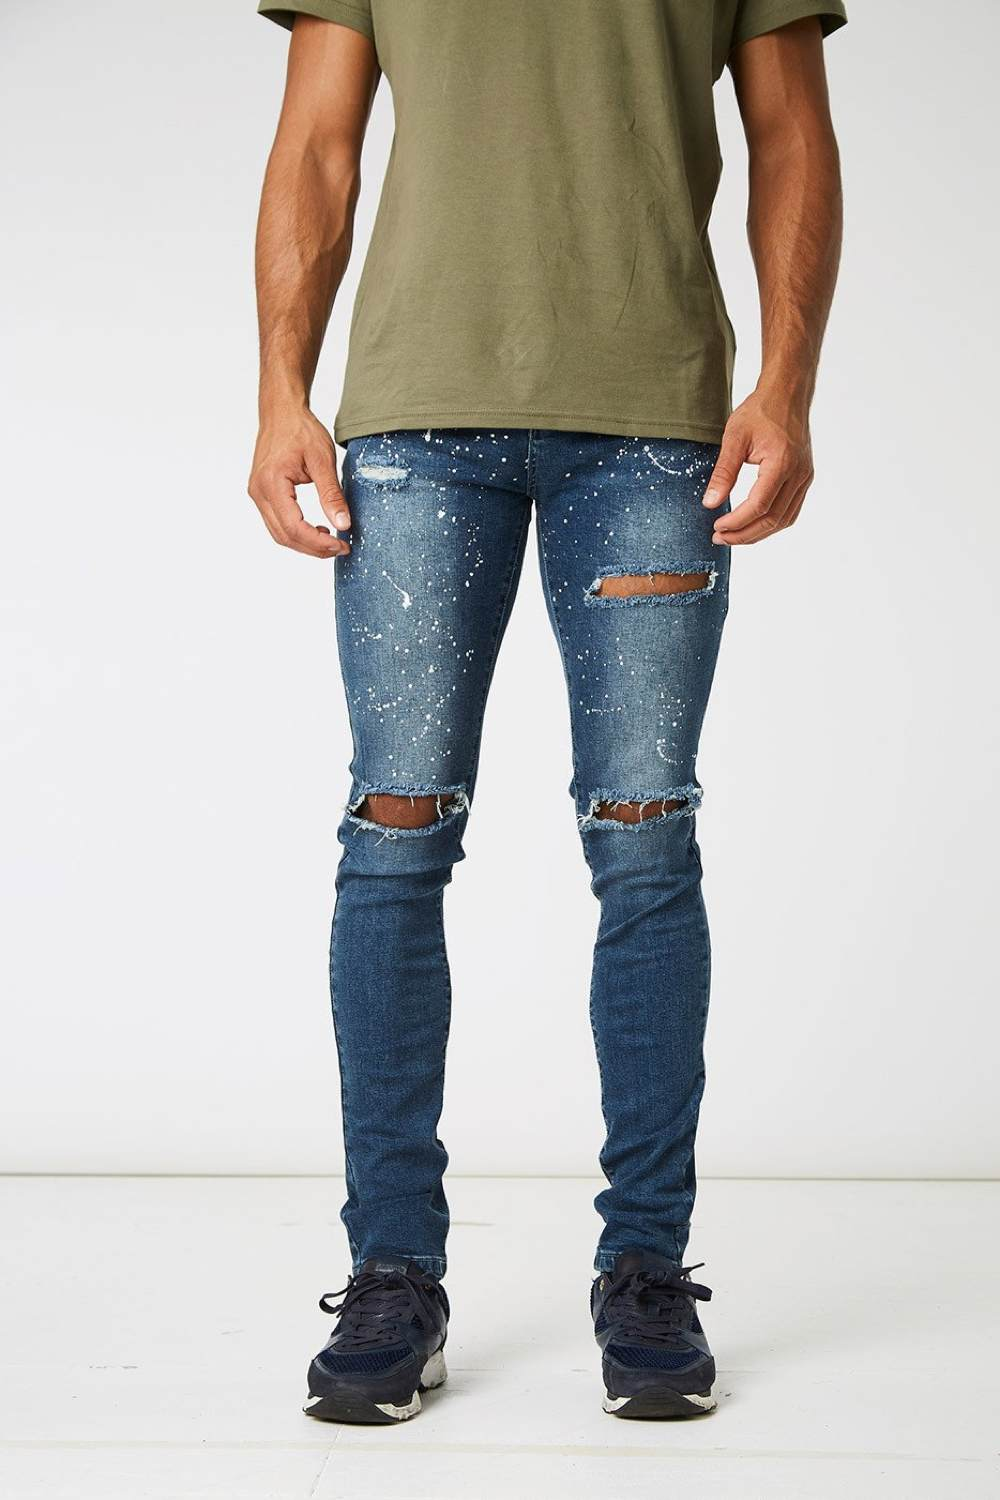 Section Clo Monet Paint Splash Ripped Jeans - Blue - 3